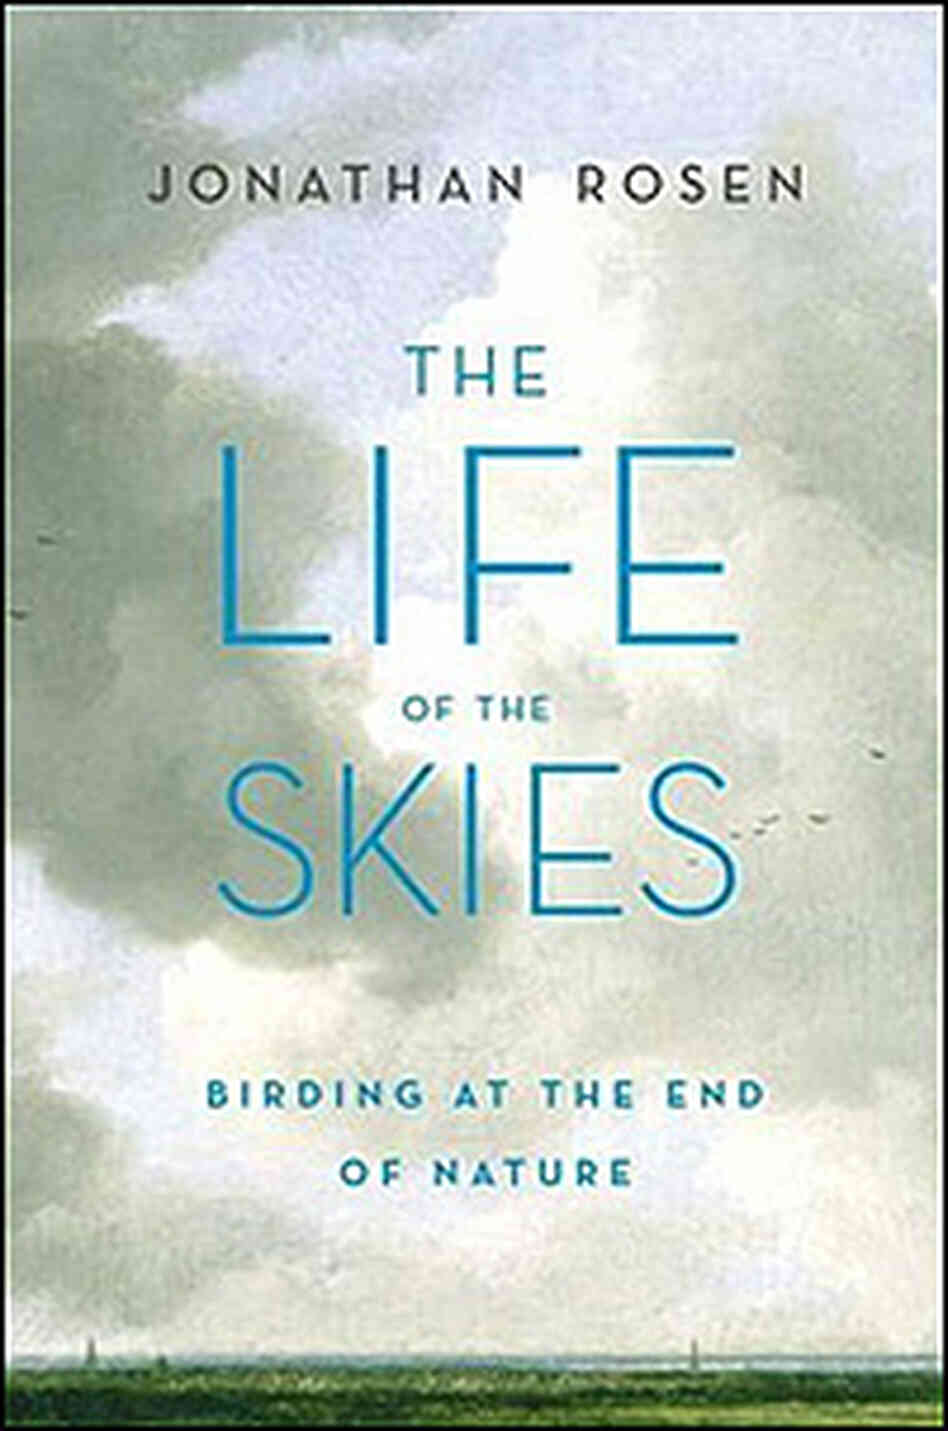 'The Life of the Skies' book cover